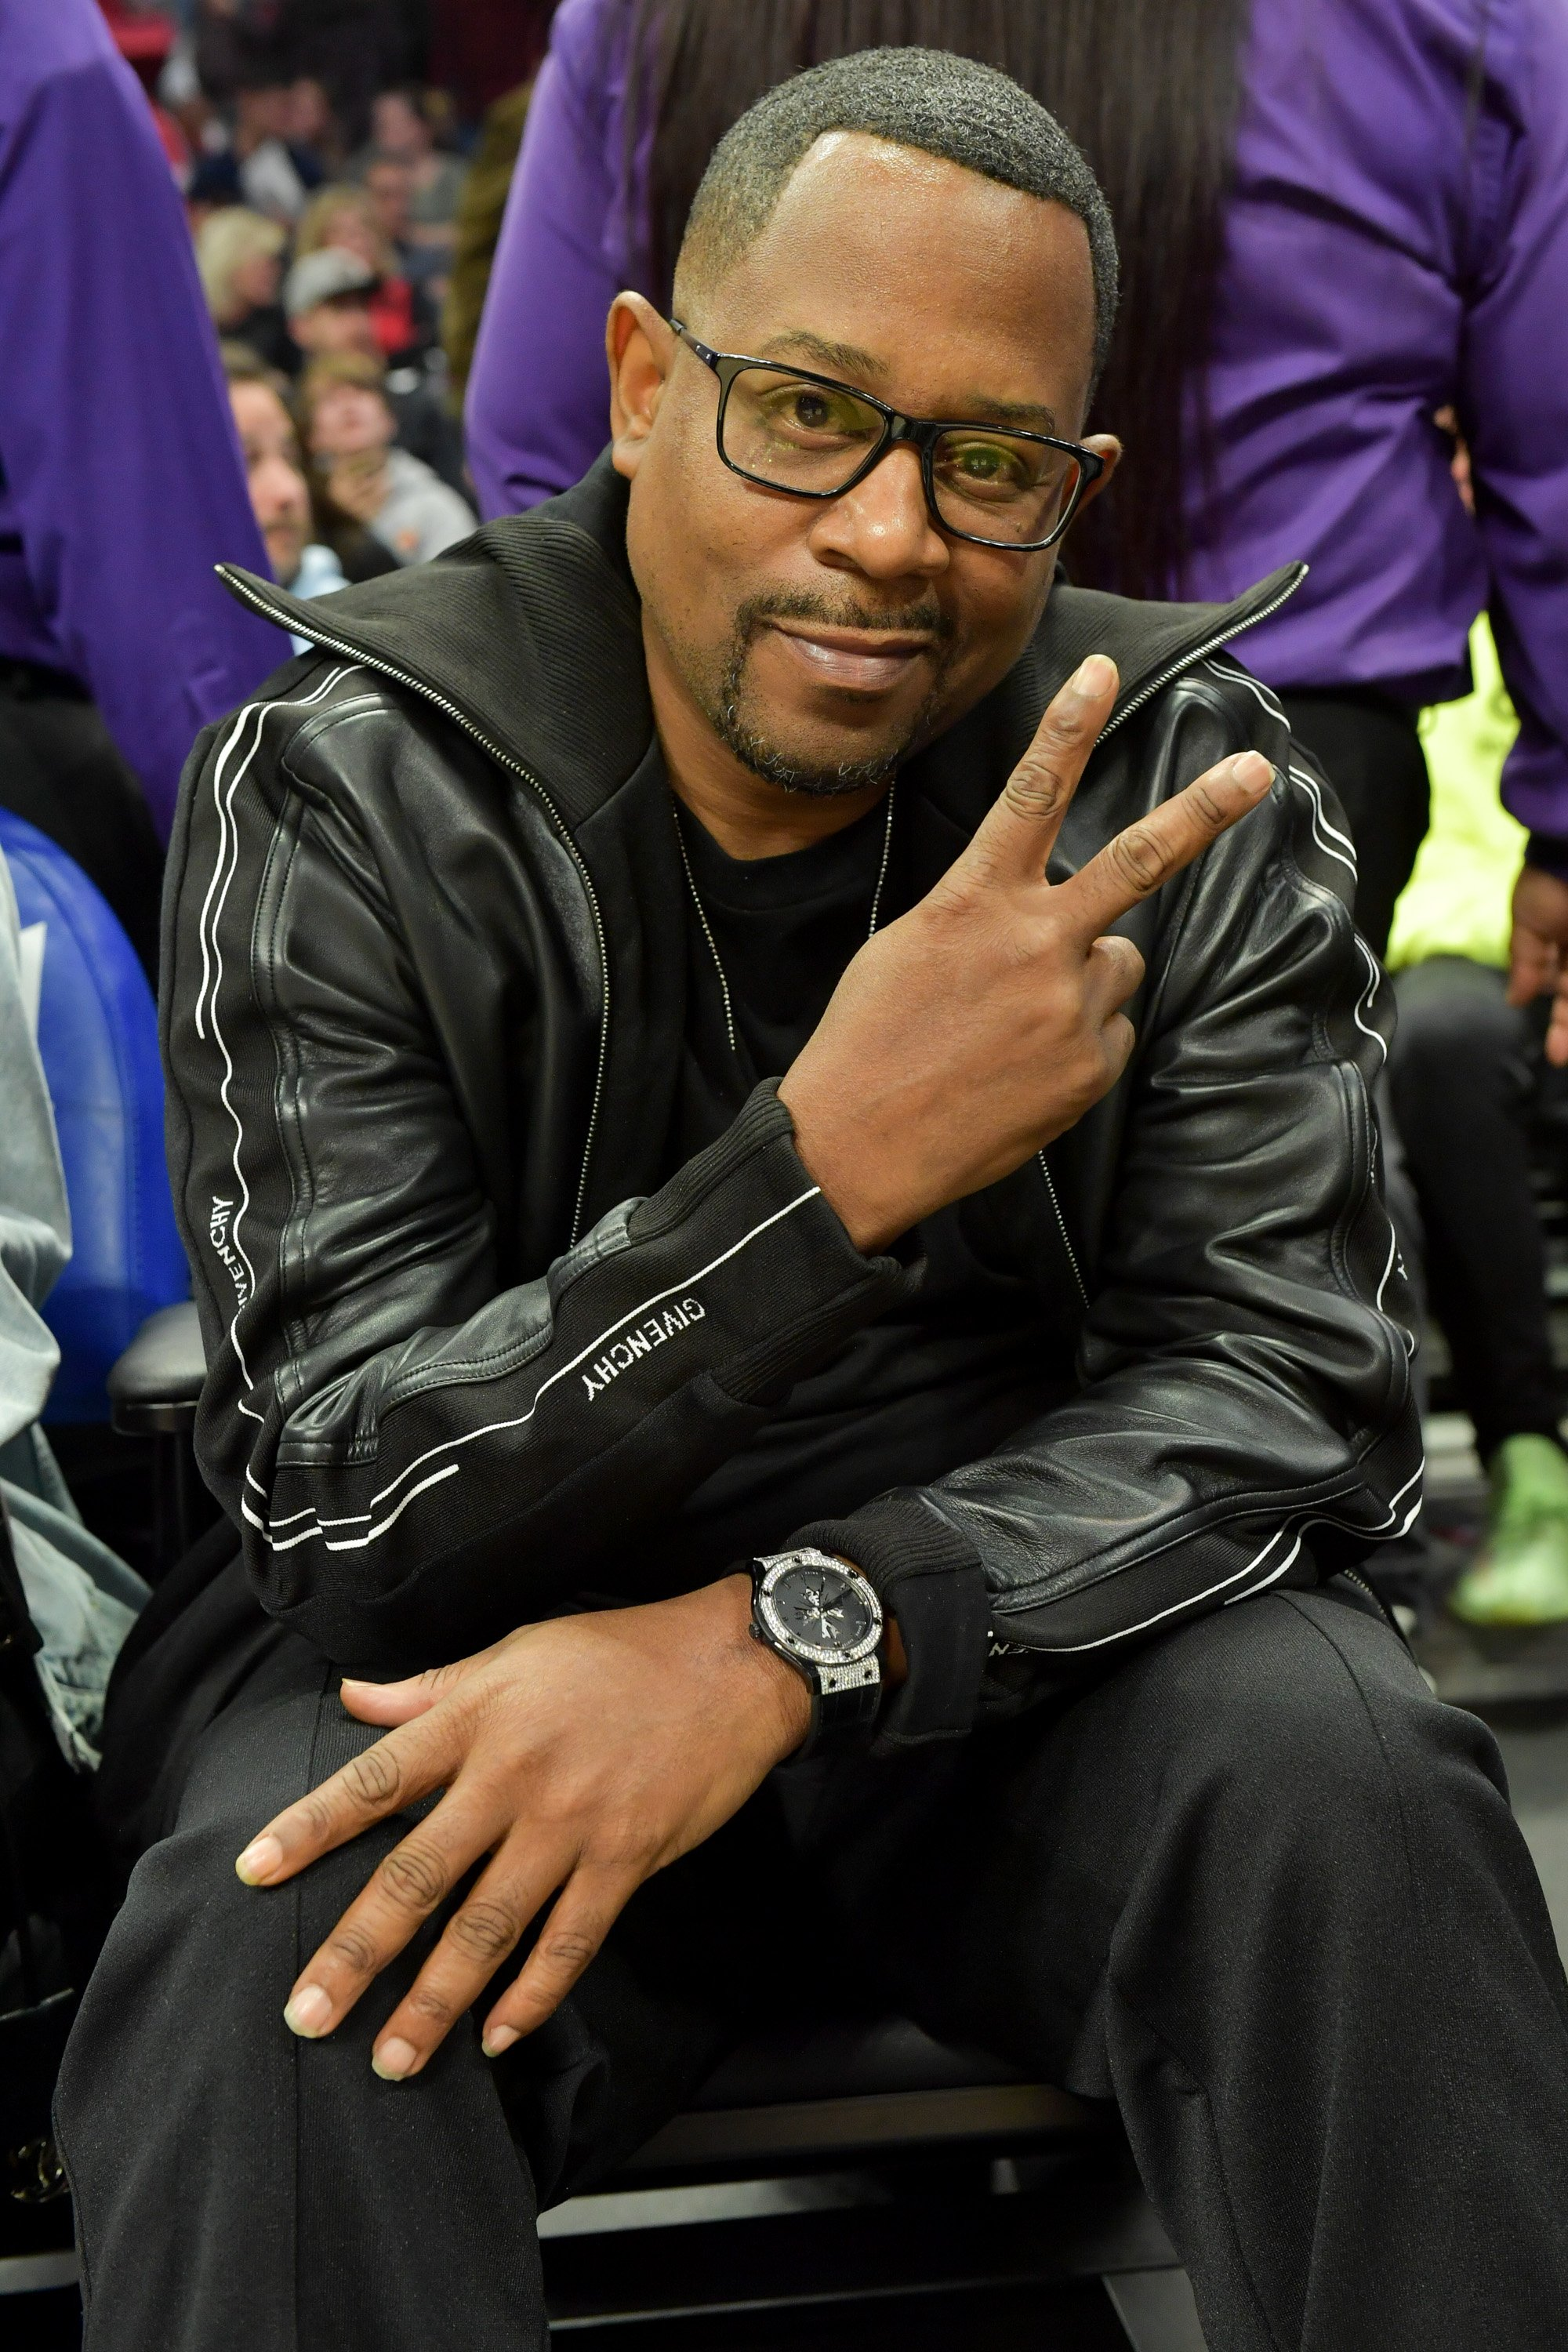 Martin Lawrence attends a basketball game between the Los Angeles Clippers and the Utah Jazz at Staples Center on December 28, 2019. | Photo: Getty Images